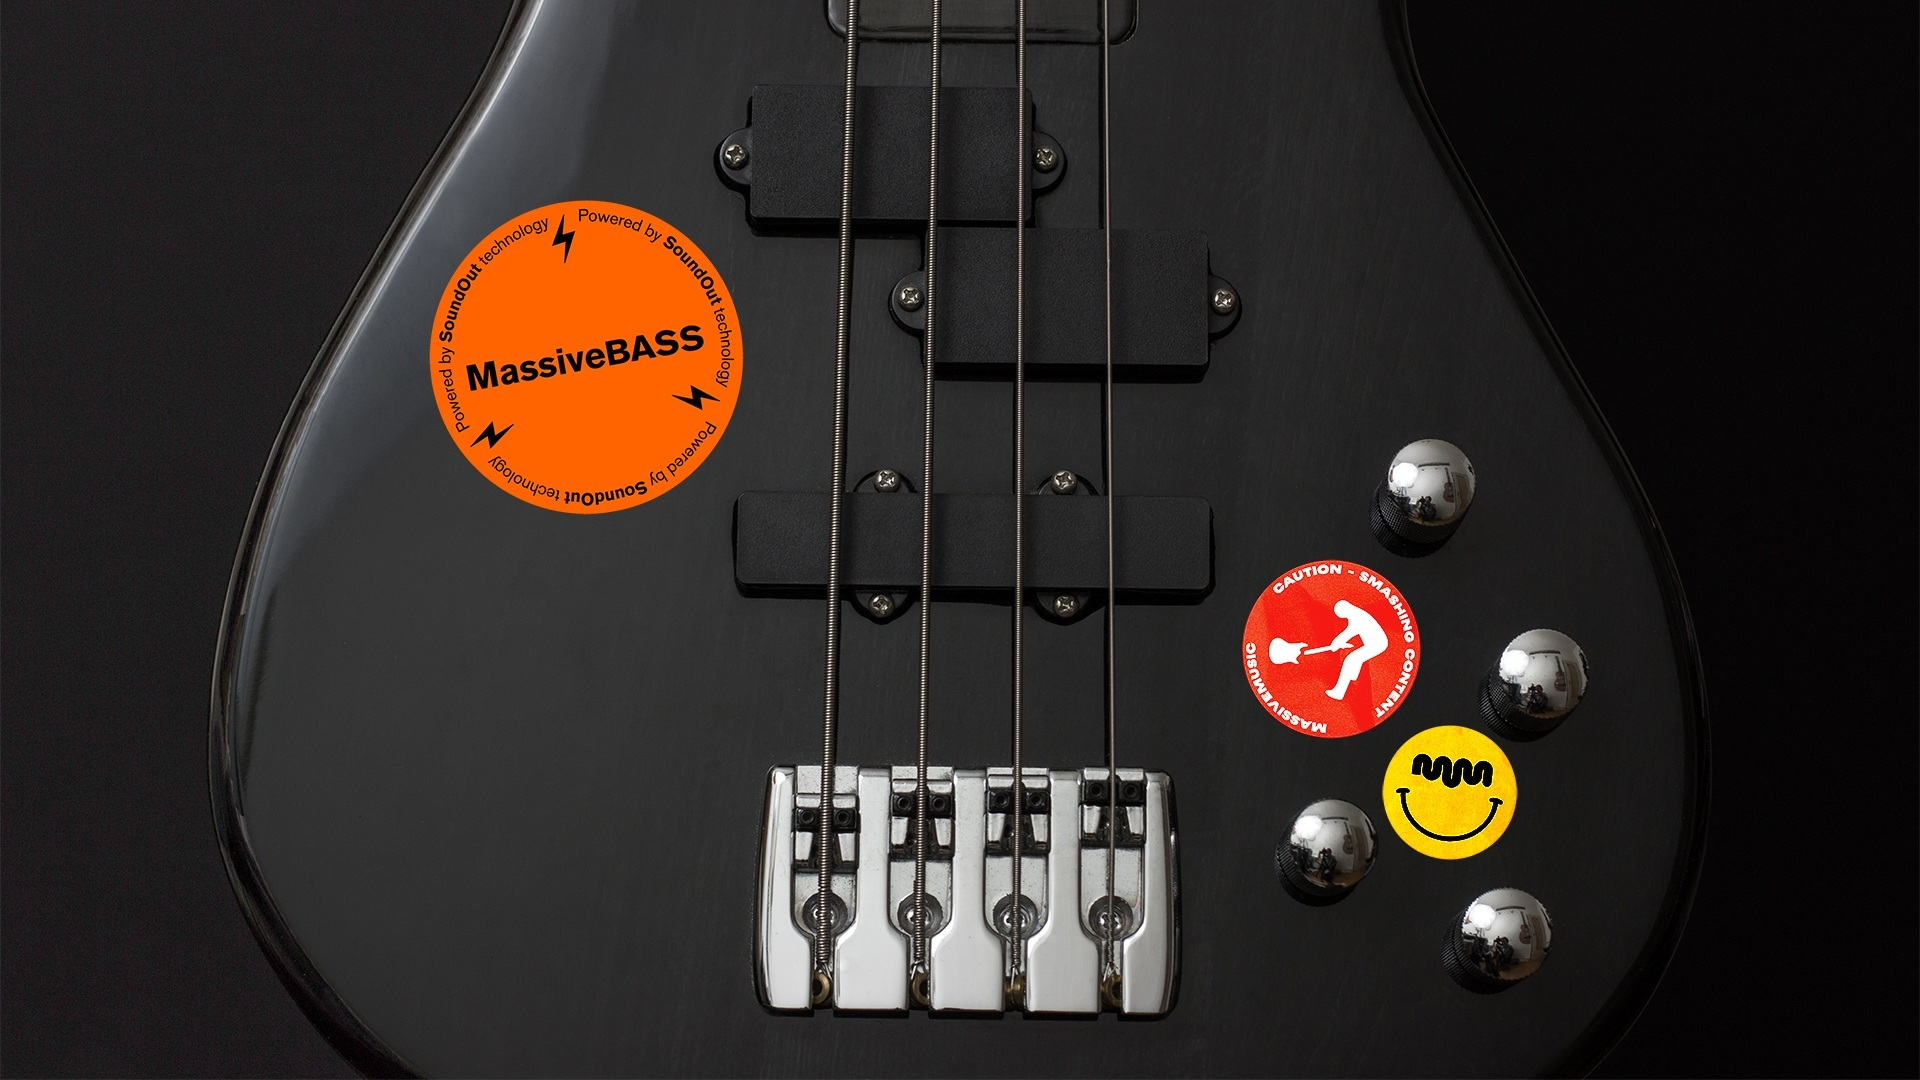 Drive the Sound<br>of Your Brand<br>with MassiveBASS